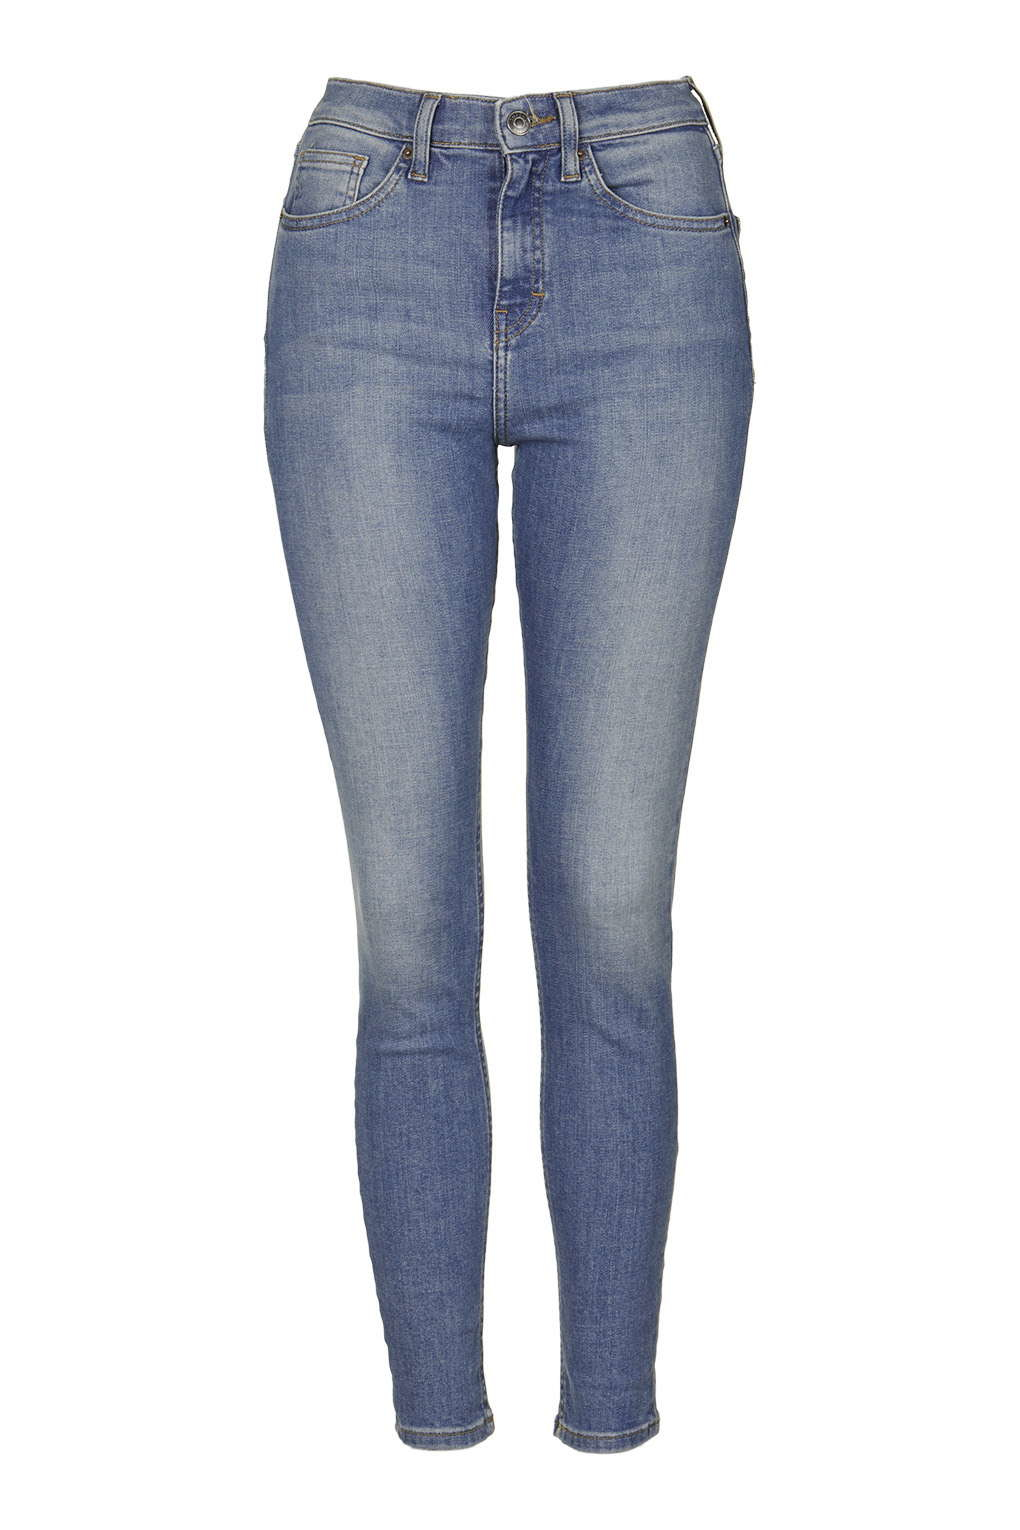 Topshop Moto Cain Premium Skinny Jeans in Blue | Lyst